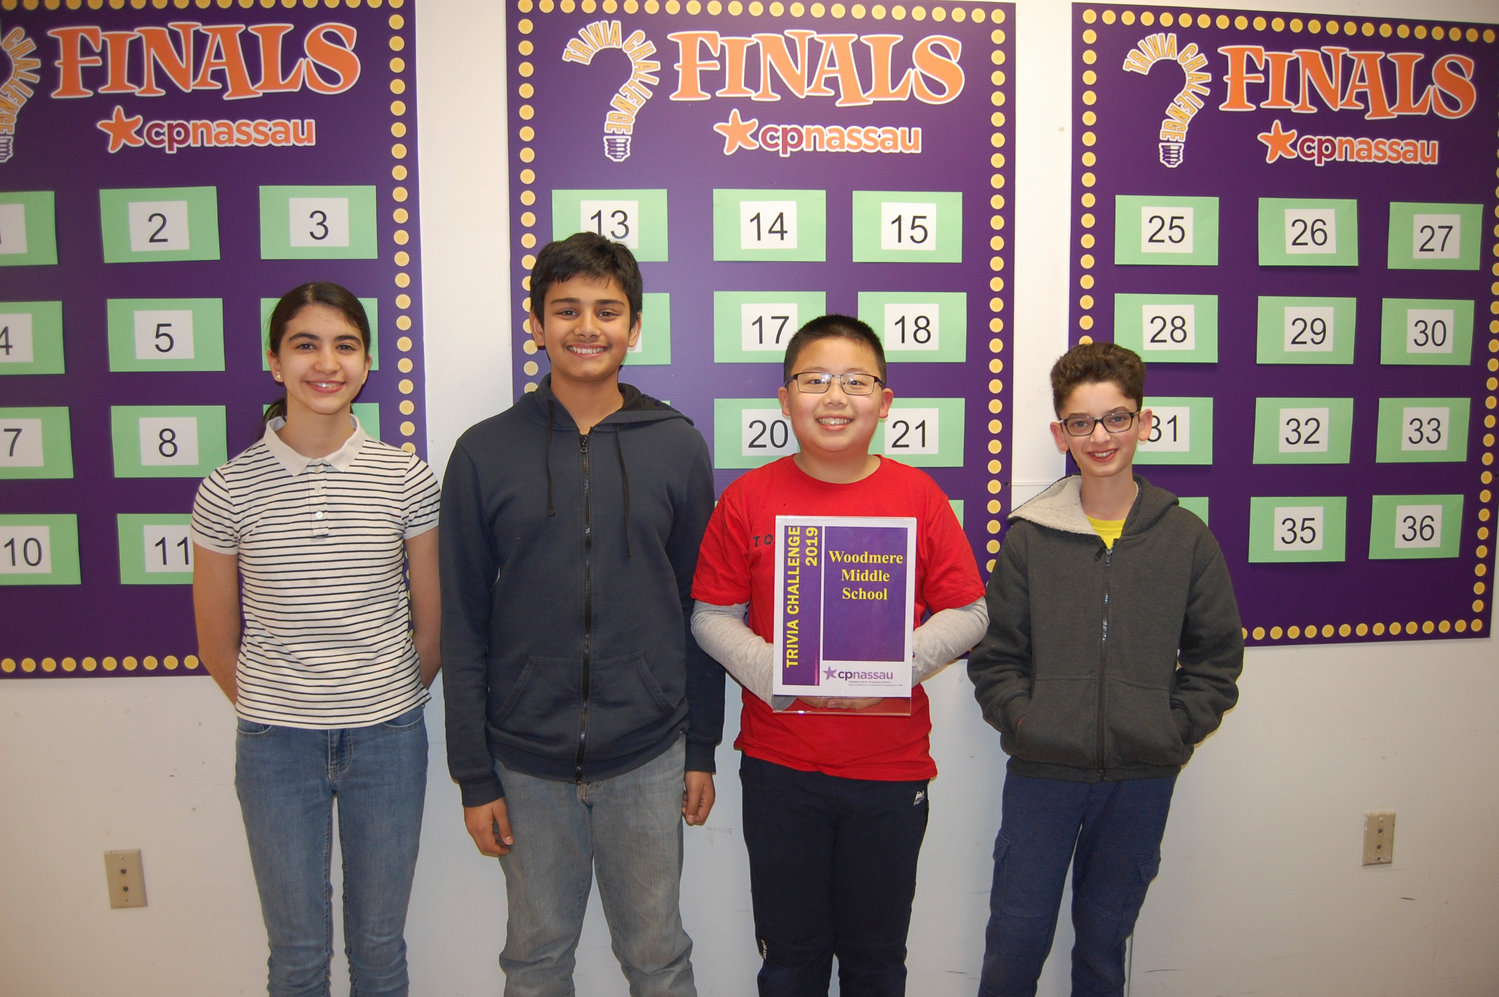 Woodmere Middle School students Leeya Azemoun, left, Ibrahim Rasheed, Brian Chen and Ethan Abeler were the winners of the CP Nassau seventh/eighth grade 2019 Trivia Challenge.